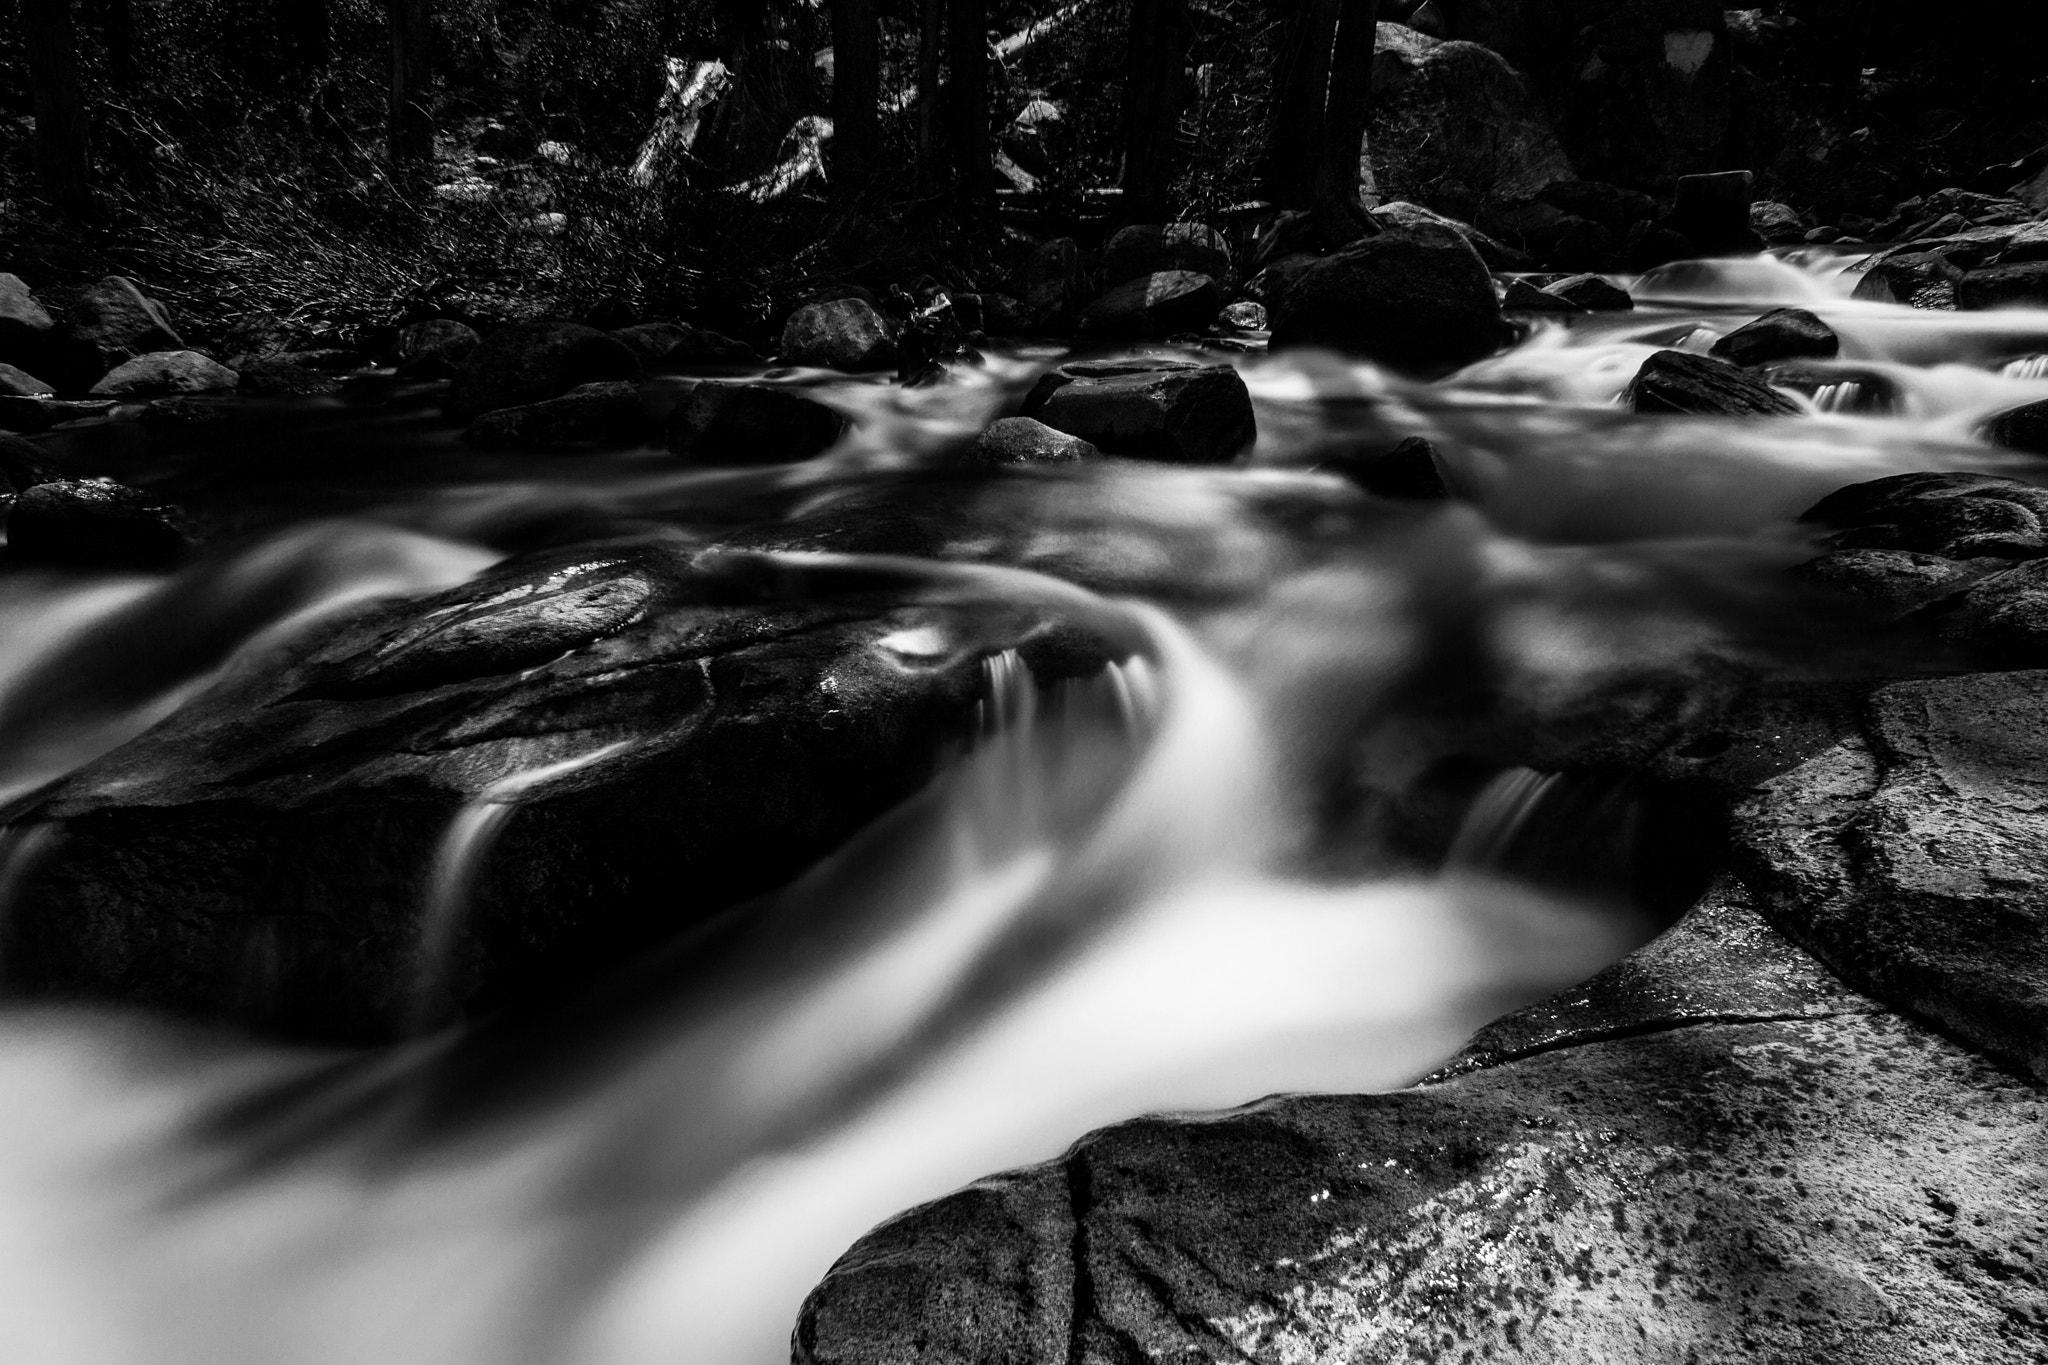 Photograph Over Wet Rocks by Aaron Barlow on 500px